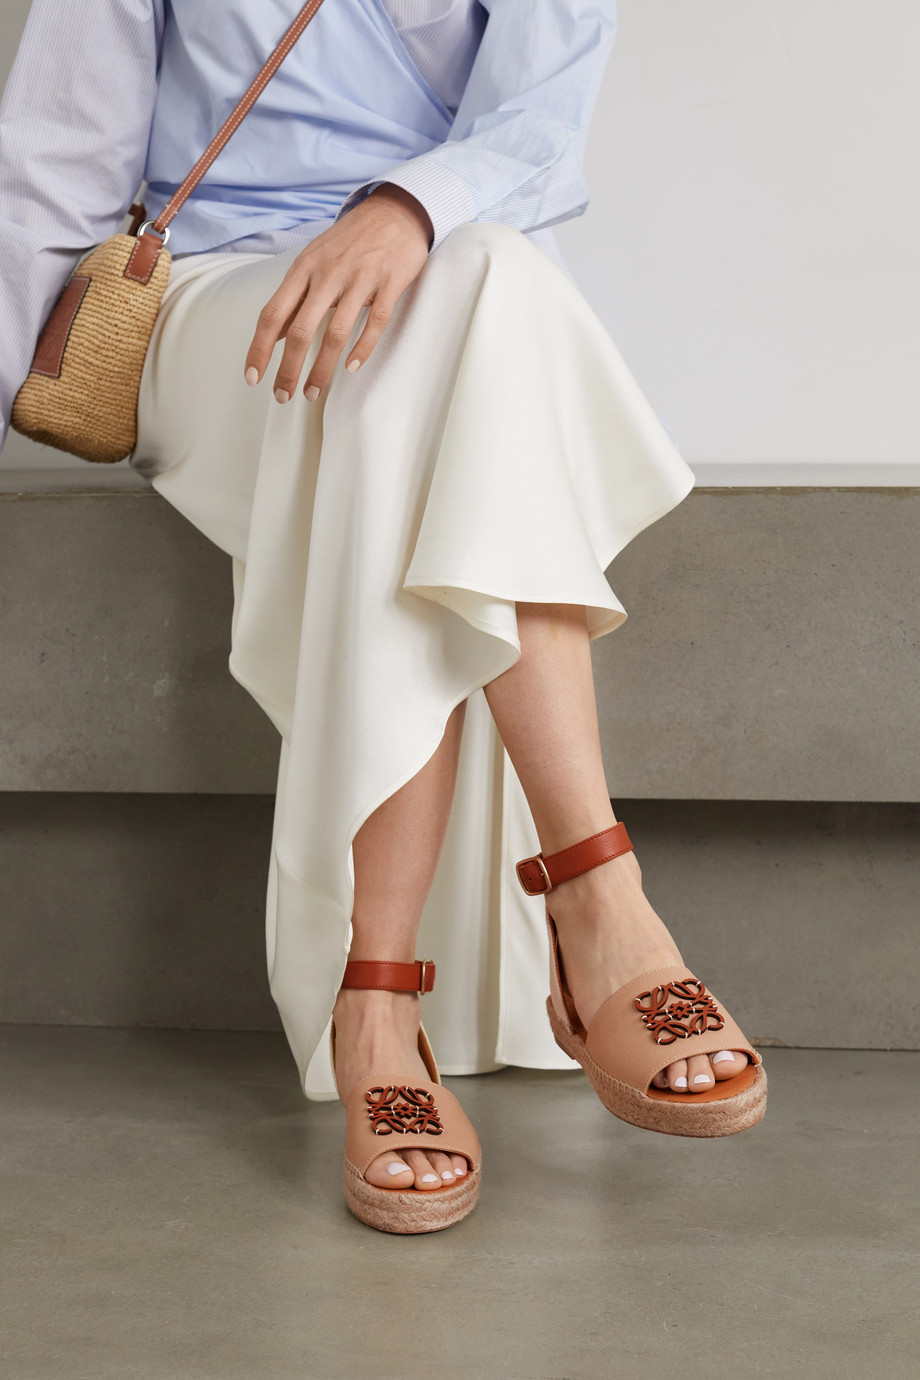 LOEWE + Paula's Ibiza canvas and leather espadrille sandals